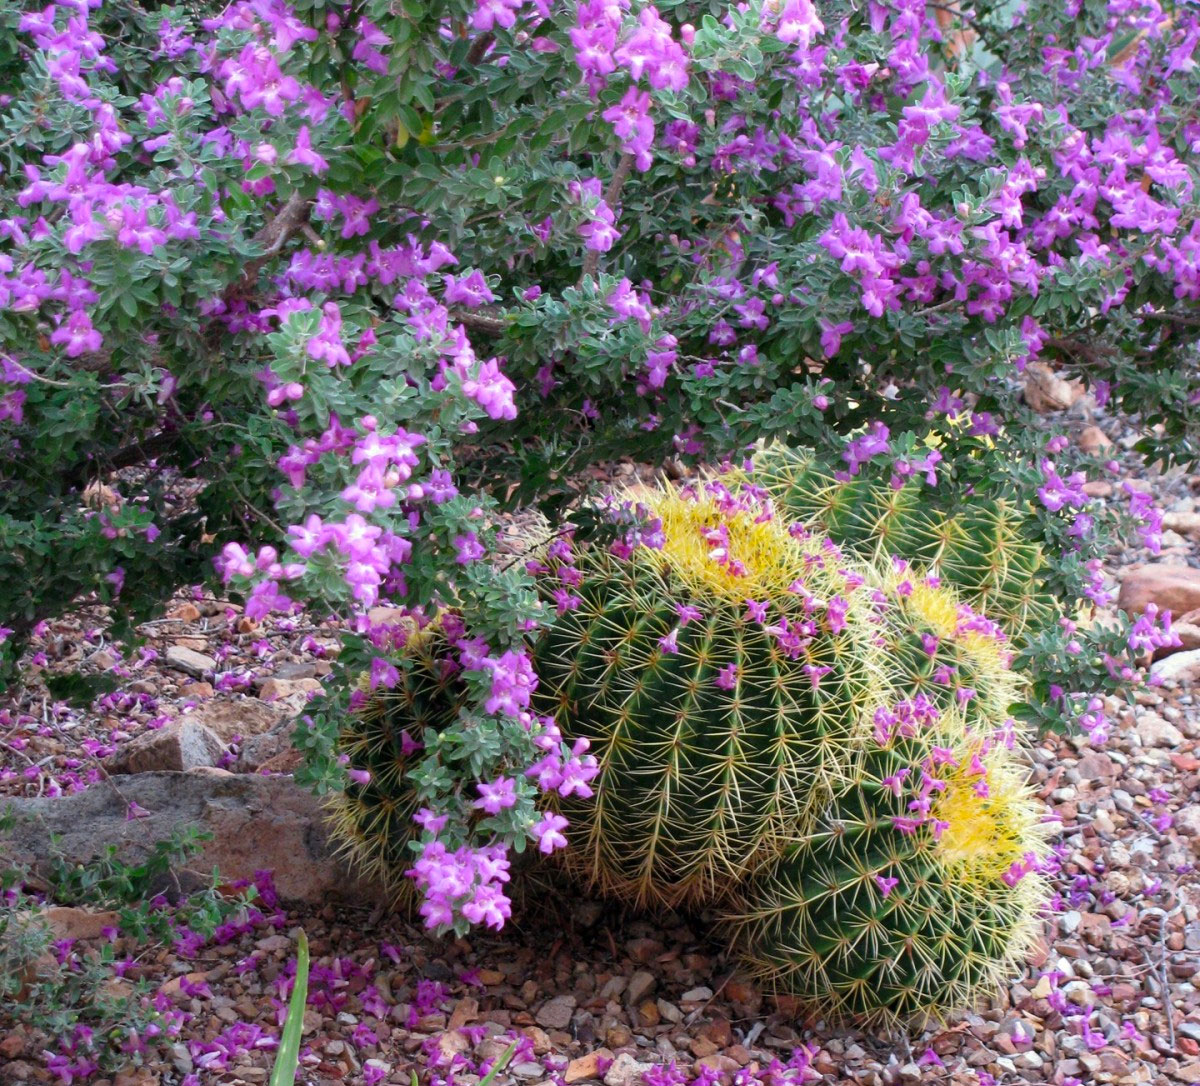 Relaxing If You Missed Prime October Planting You Can Still Continuefall Planting Although Plants Will Establish Slower November Is A Month To Get Outdoors Desert houzz-03 Texas Ranger Plant